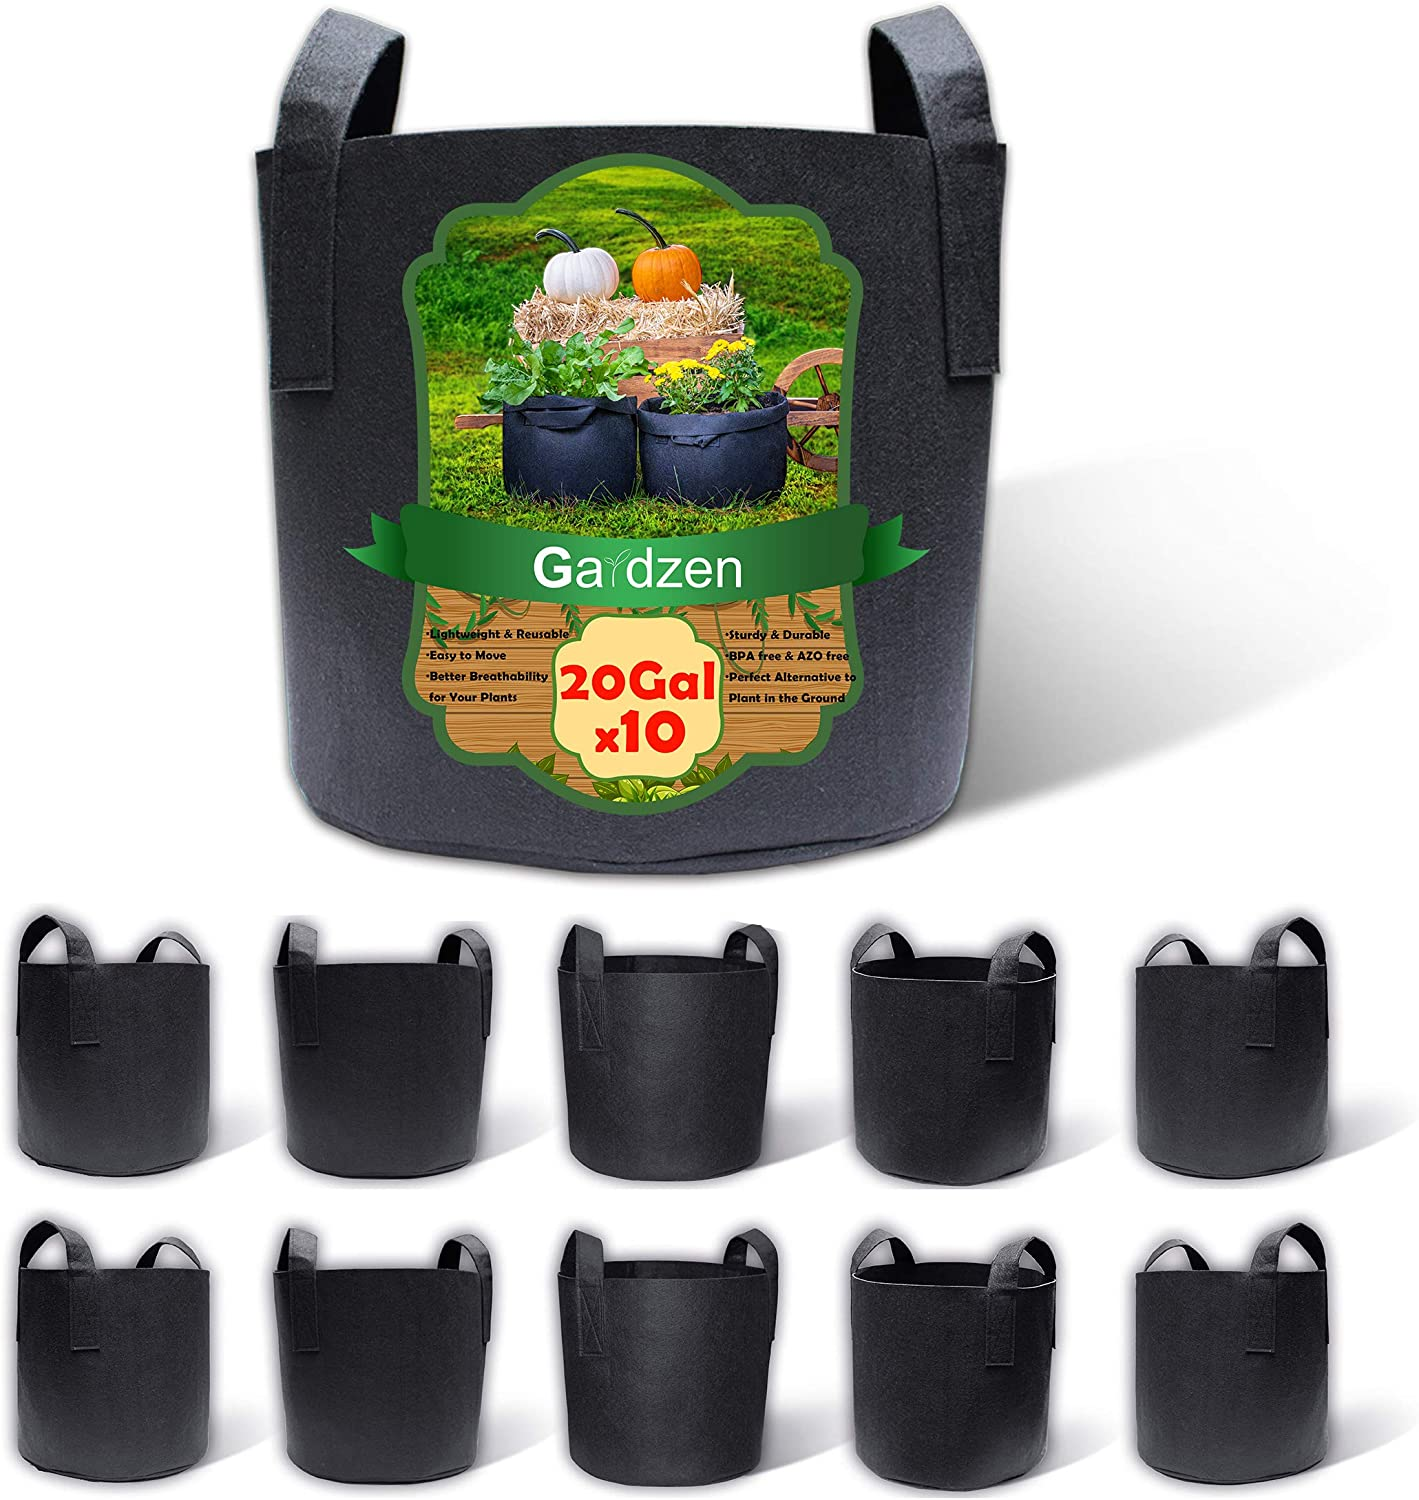 Gardzen 10-Pack 20 Gallon Grow Bags, Aeration Fabric Pots with Handles